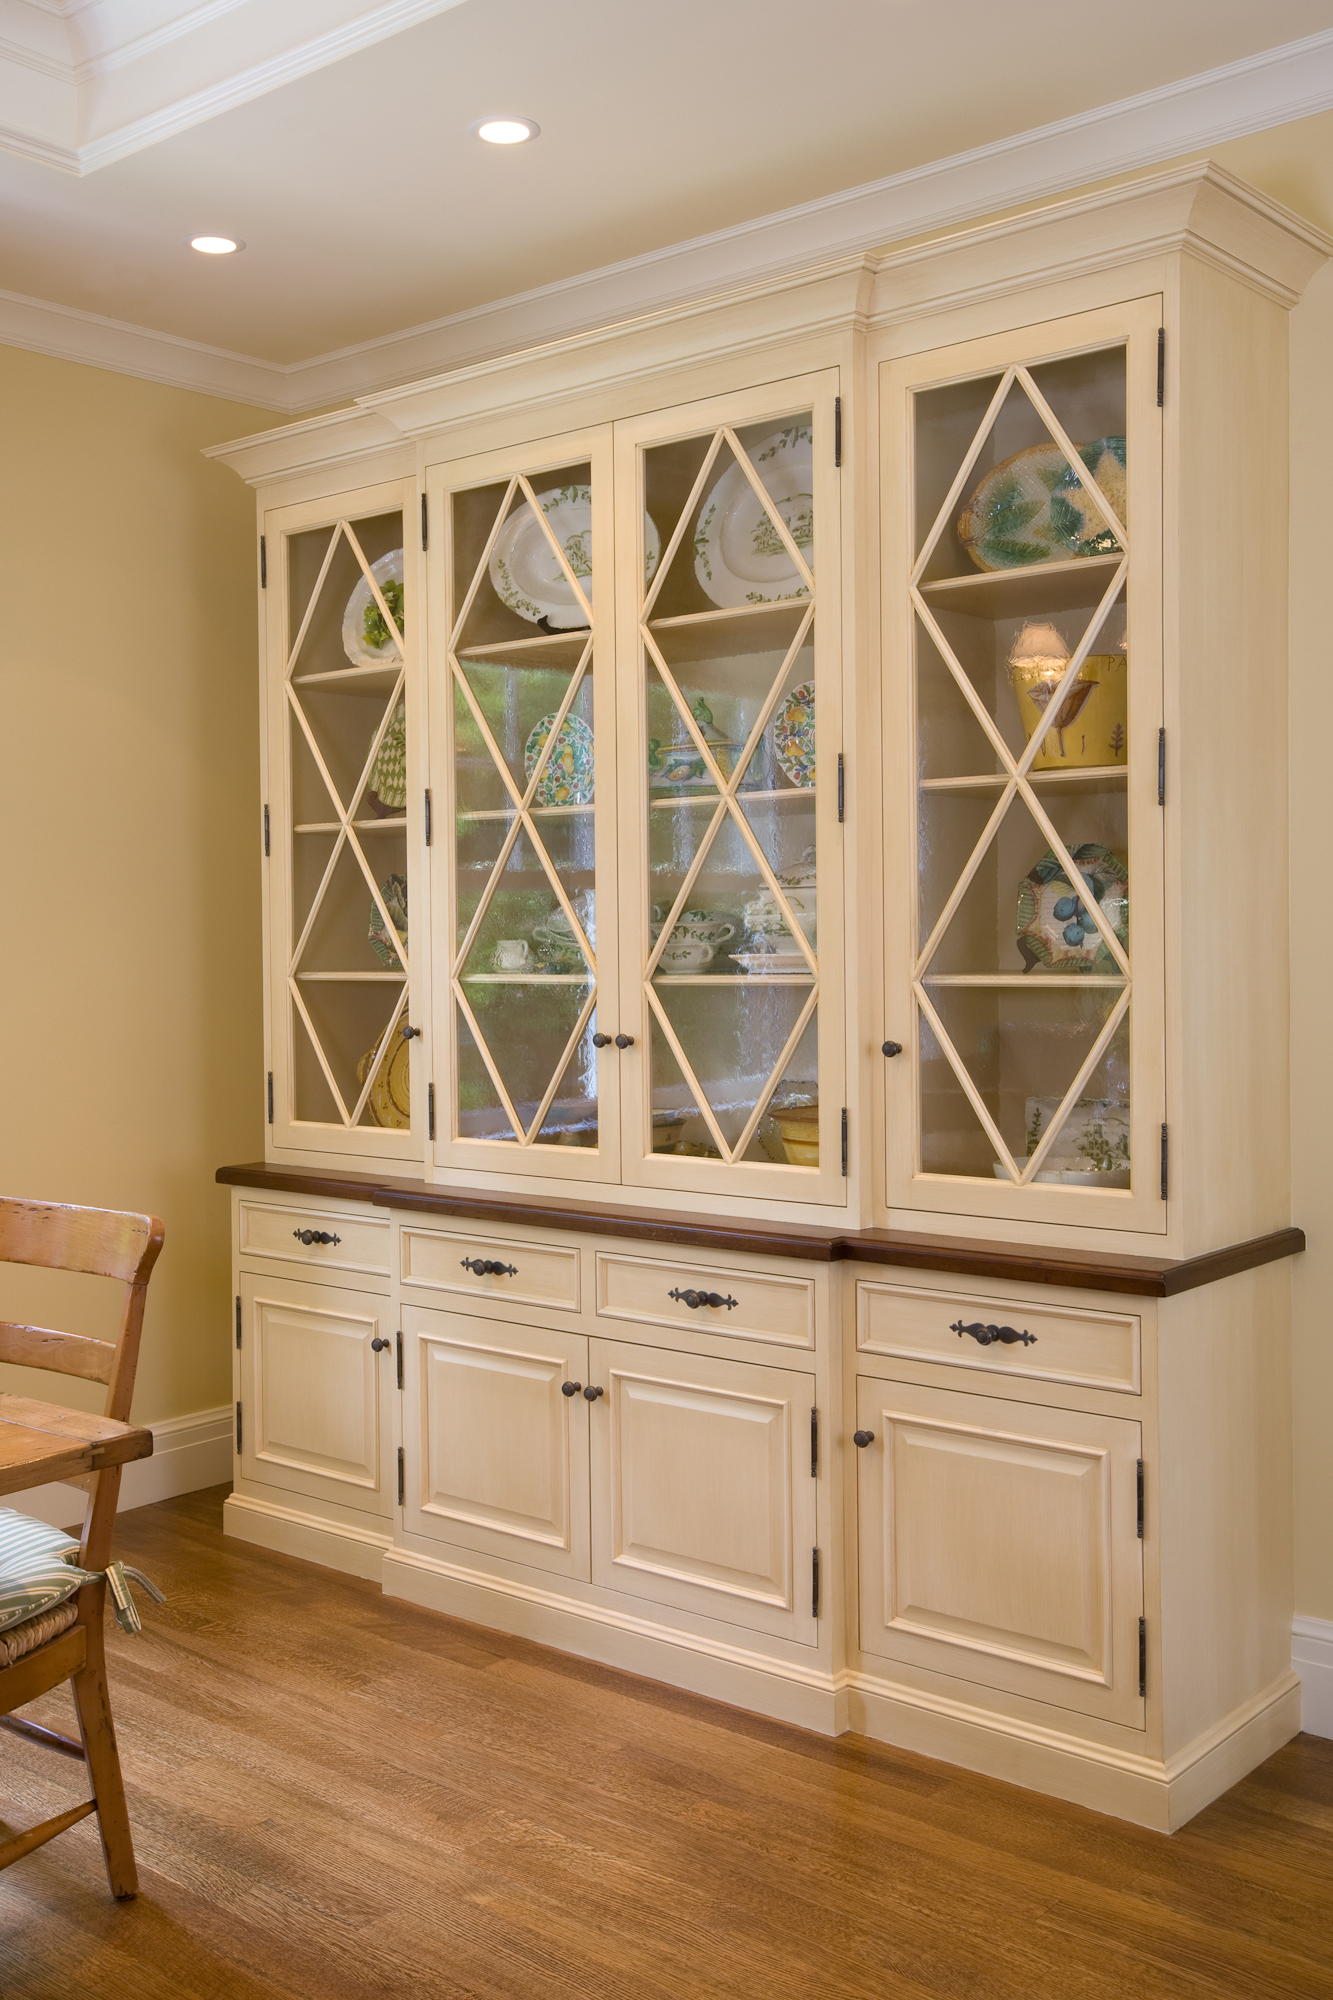 Double Crown Molding Designing And Building Fine Custom Cabinetry For 50 Years